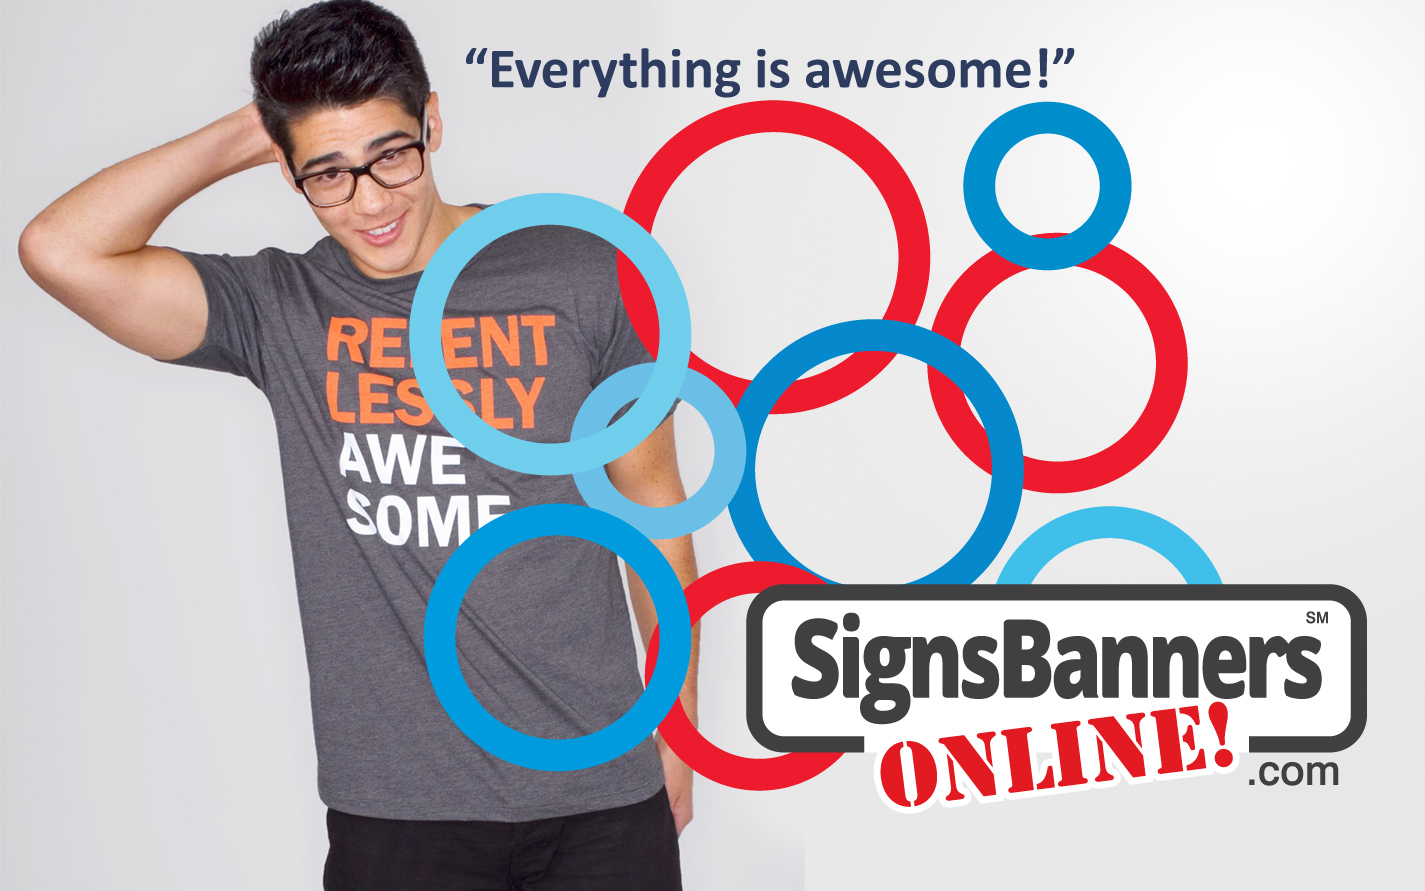 With Signs Banners Online Everything is Awesome!